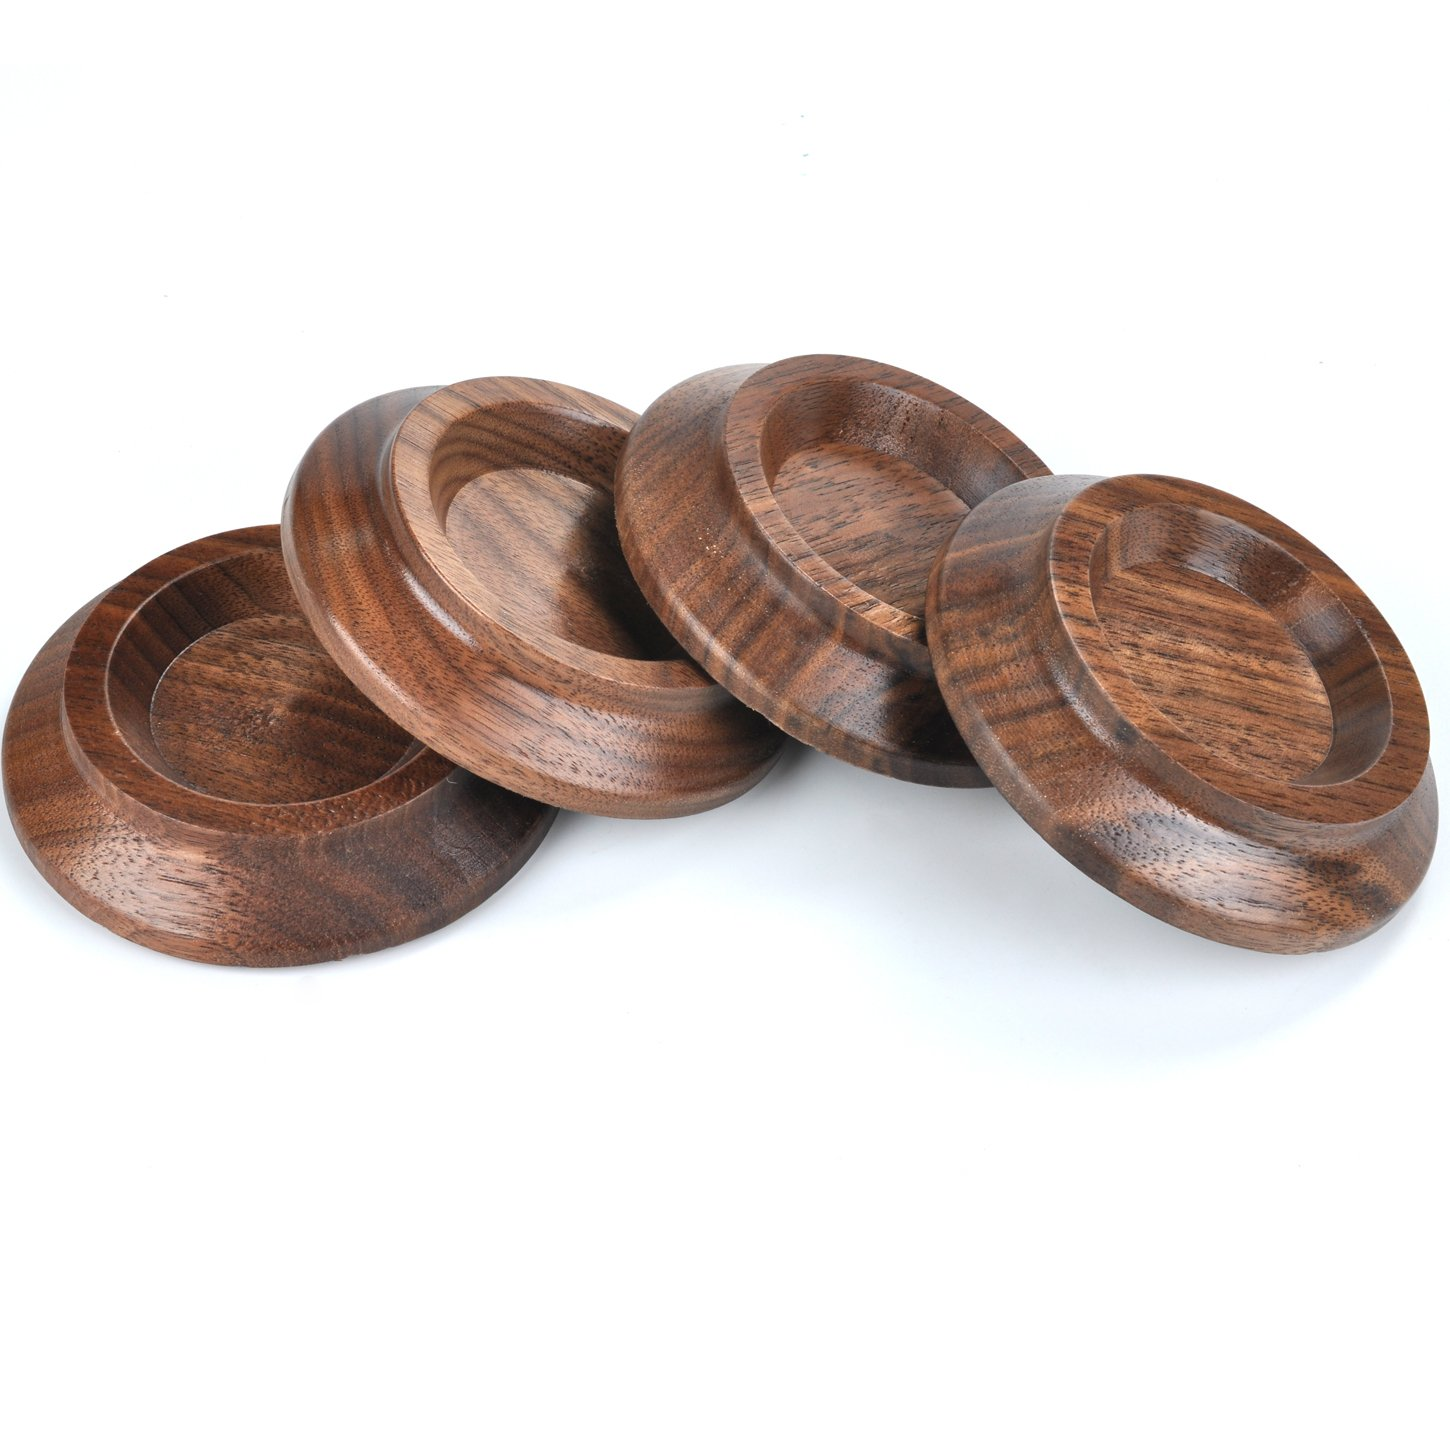 Upright Piano Caster Cups ,Solid Wood Furniture,Piano Caster Cups - Non-Slip & Anti-Noise Foam (black walnut) by WOGOD (Image #3)